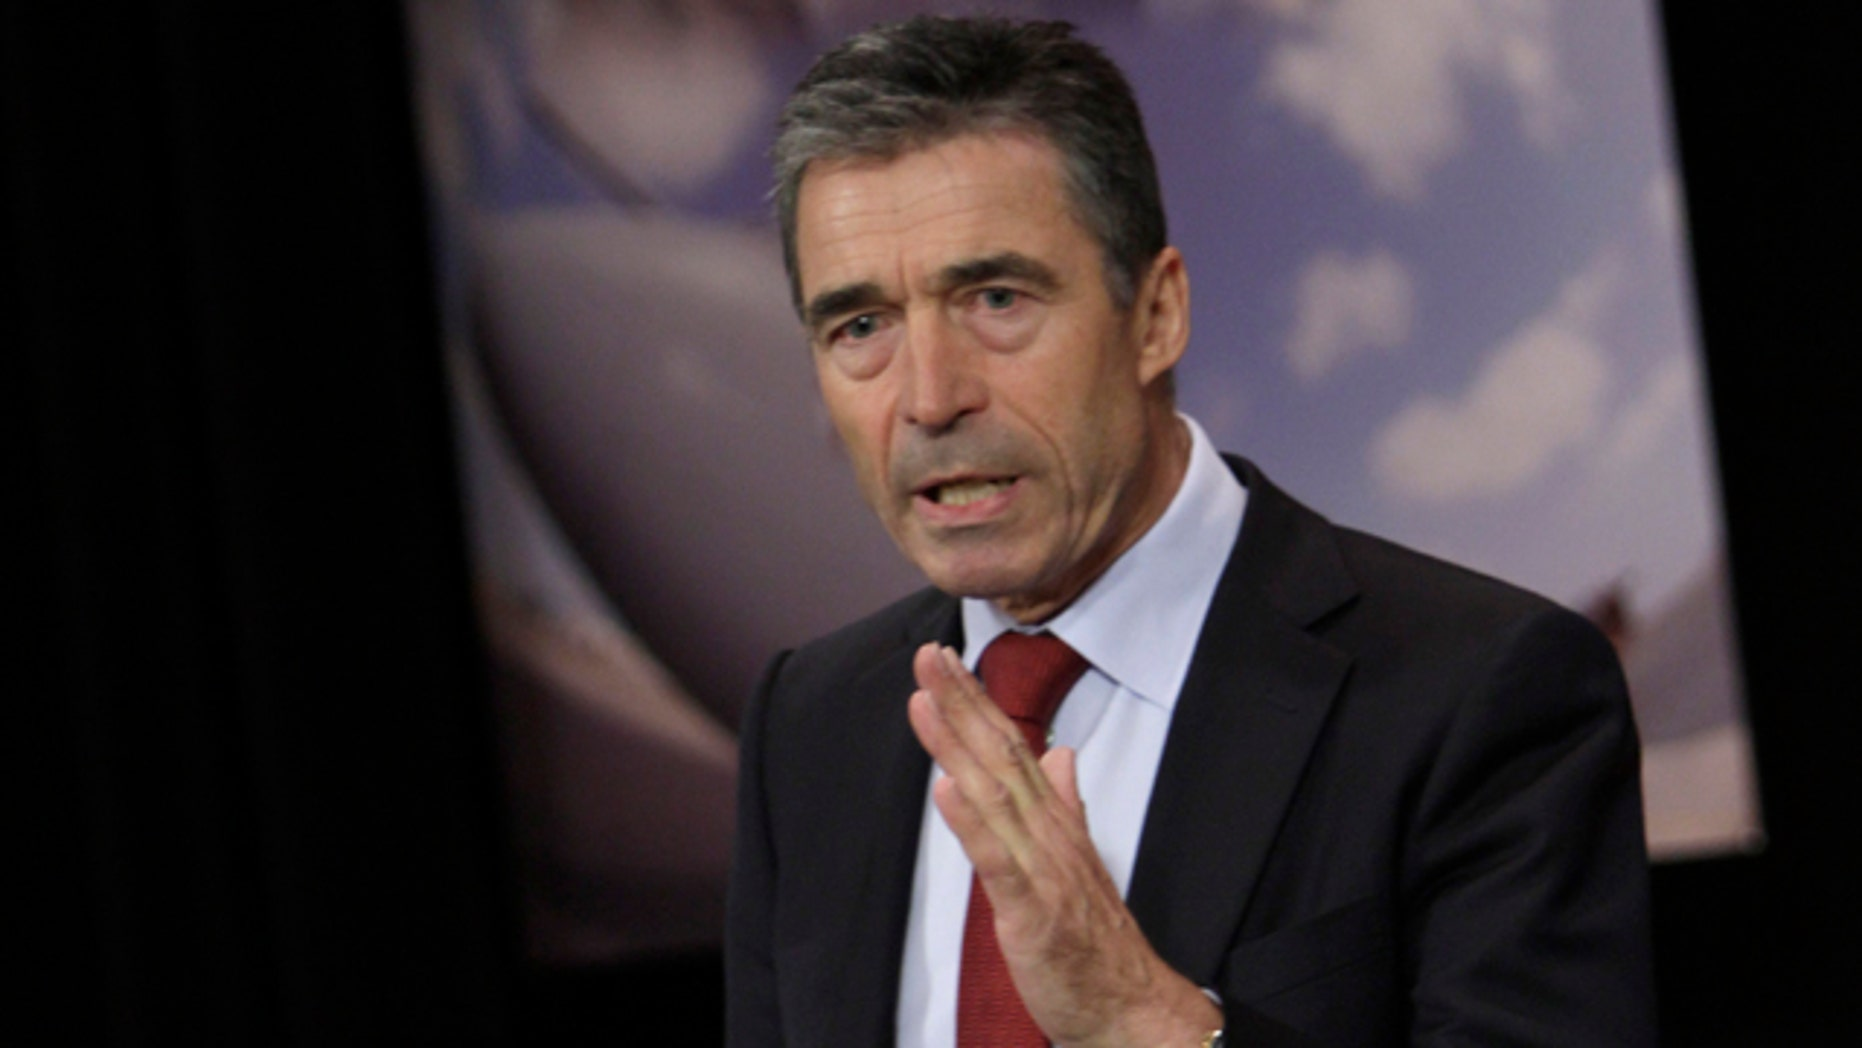 June 9: NATO Secretary-General Anders Fogh Rasmussen speaks during a media conference after a meeting of NATO defense ministers at NATO headquarters in Brussels.